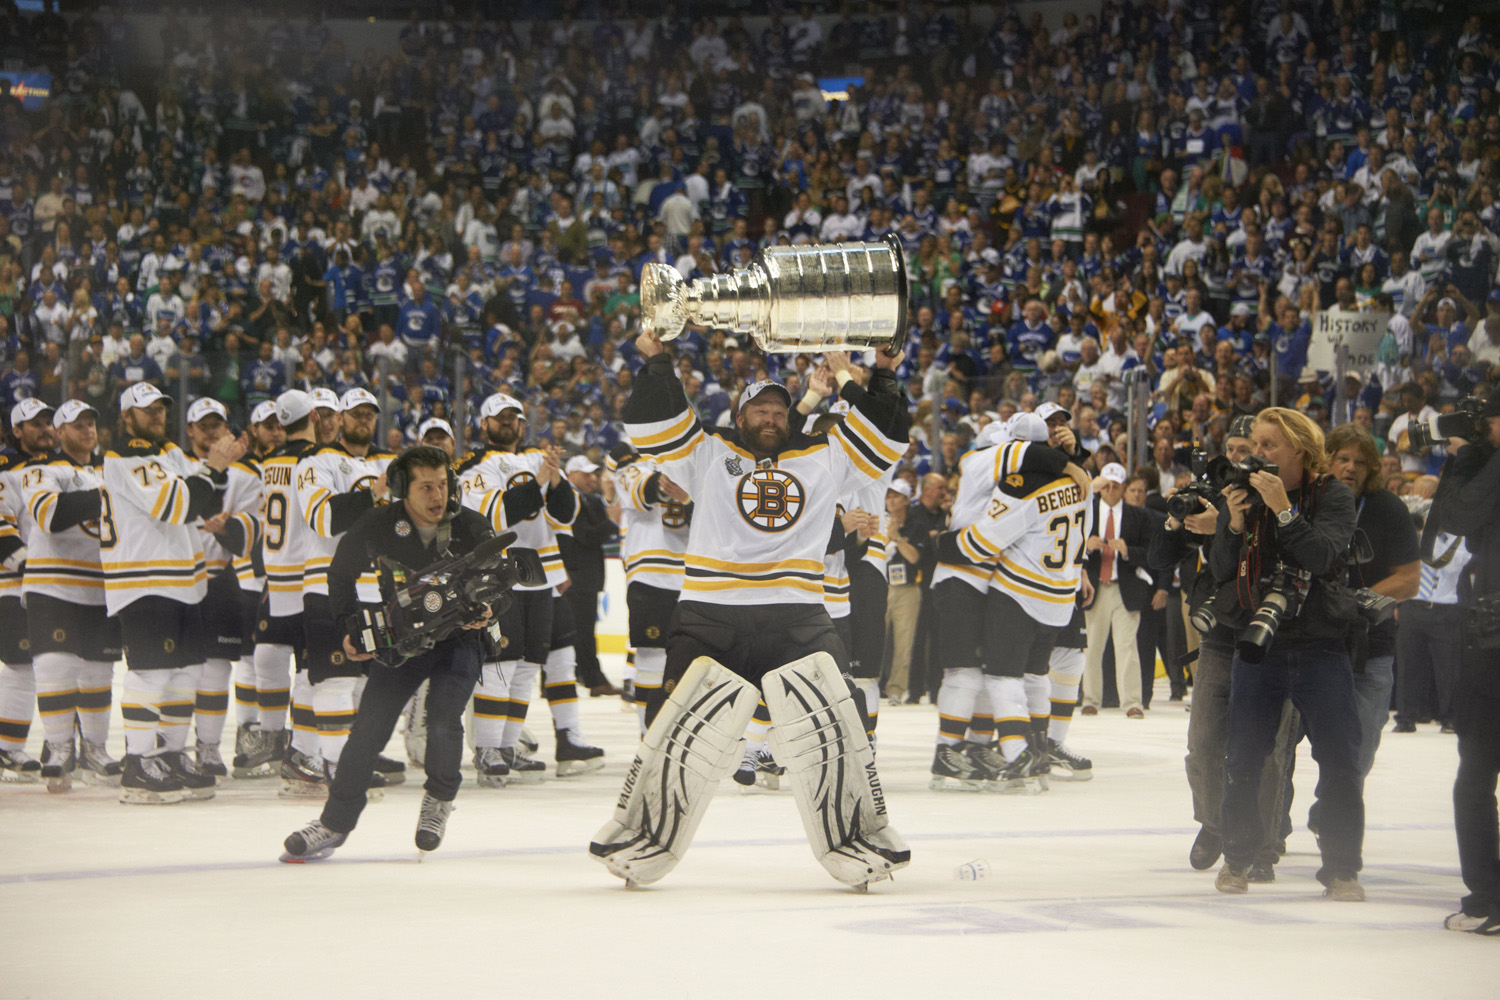 Lou Capozzola's photograph of Boston Bruins goalie Tim Thomas as he raises the Stanley Cup after the Bruins defeated the Vancouver Canucks in Vancouver on June 15, 2011.